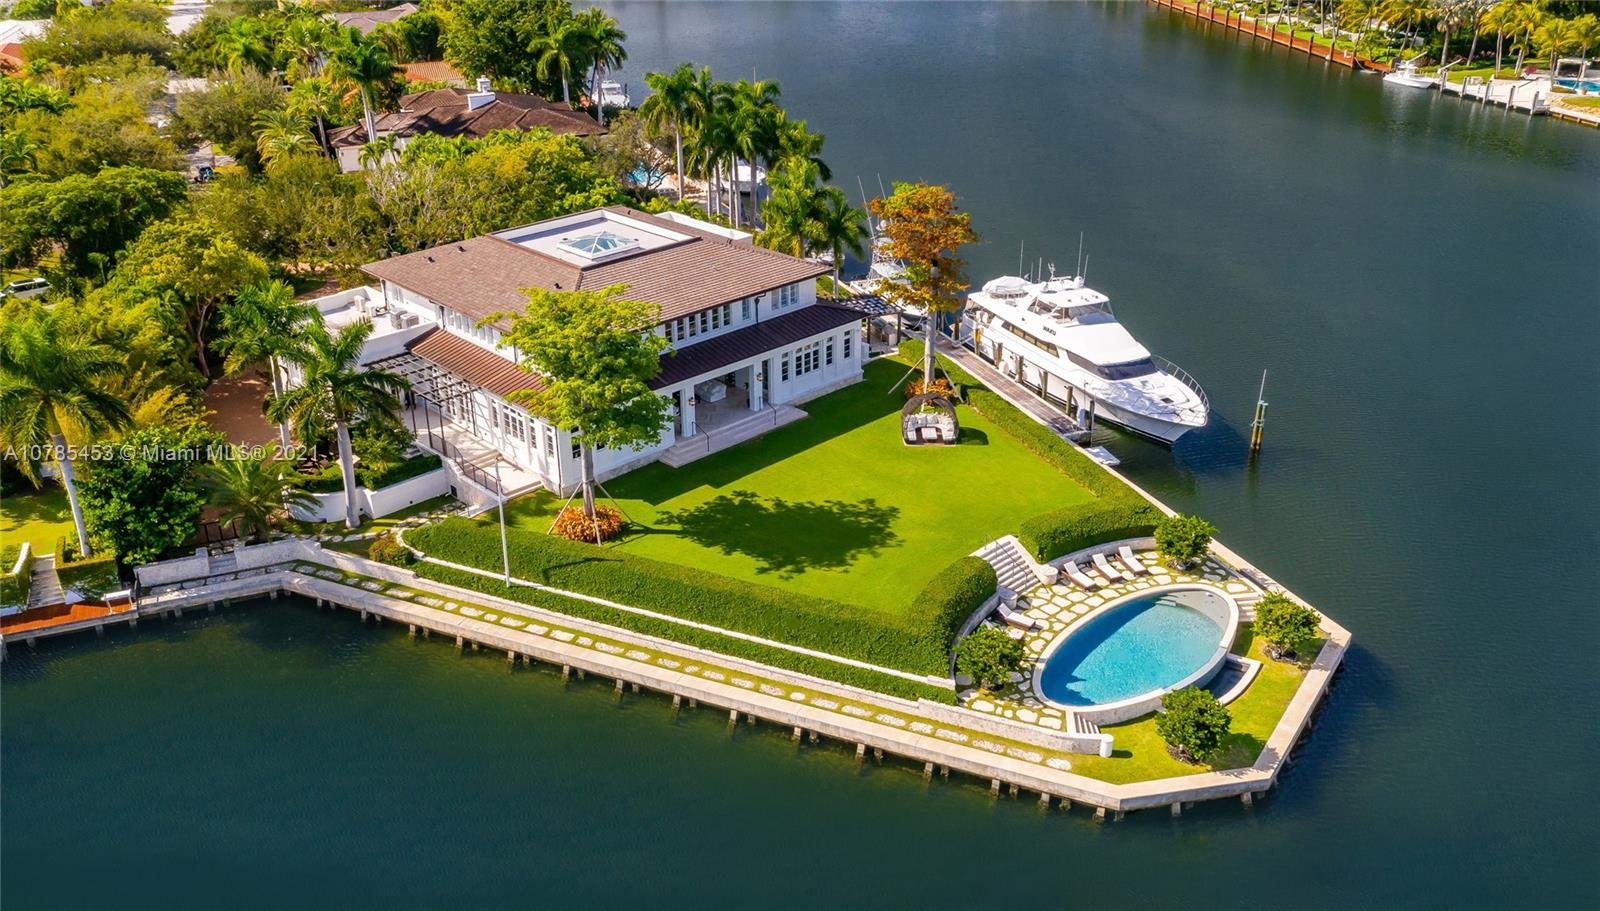 Custom estate built in 2016 in the exclusive gated Old Cutler Bay sitting on a rare 1acre peninsula lot with 435ft of waterfront & a 75ft dock.This completely smart home w surround sound throughout offers 19,390SF Total with 7B, 7.2b with master bedroom on the main level. 1st floor also features formal & informal living spaces,formal dinning room,breakfast area, chefs kitchen w/ 3 Subzero fridge/ freezers, bar area, temp.controlled wine cellar, library/media room and office. Take elevator or stairs to the 2nd floor that features 4 guest suites, hobby room, 2 staff rooms,laundry room,& upstairs family room. The stunning backyard features a resort style pool/jacuzzi, fire pit,full outdoor kitchen,& cabana bath.Home also features an 18 car garage,storage rooms,generator & captains quarters.